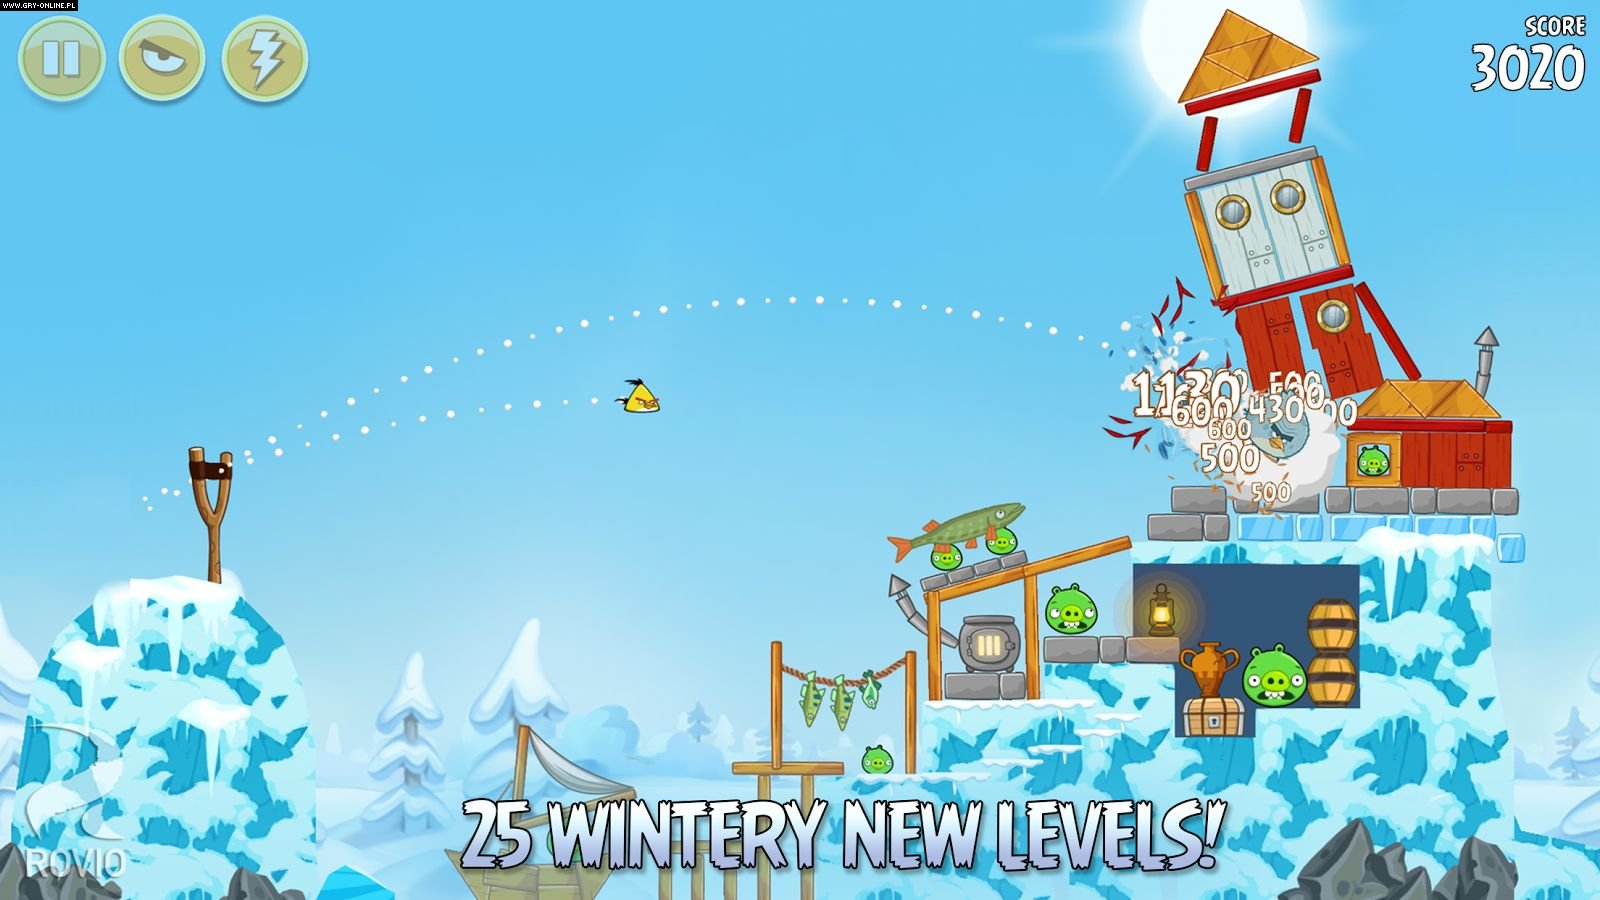 Angry Birds Seasons PC, WP, AND, iOS Gry Screen 1/4, Rovio Mobile